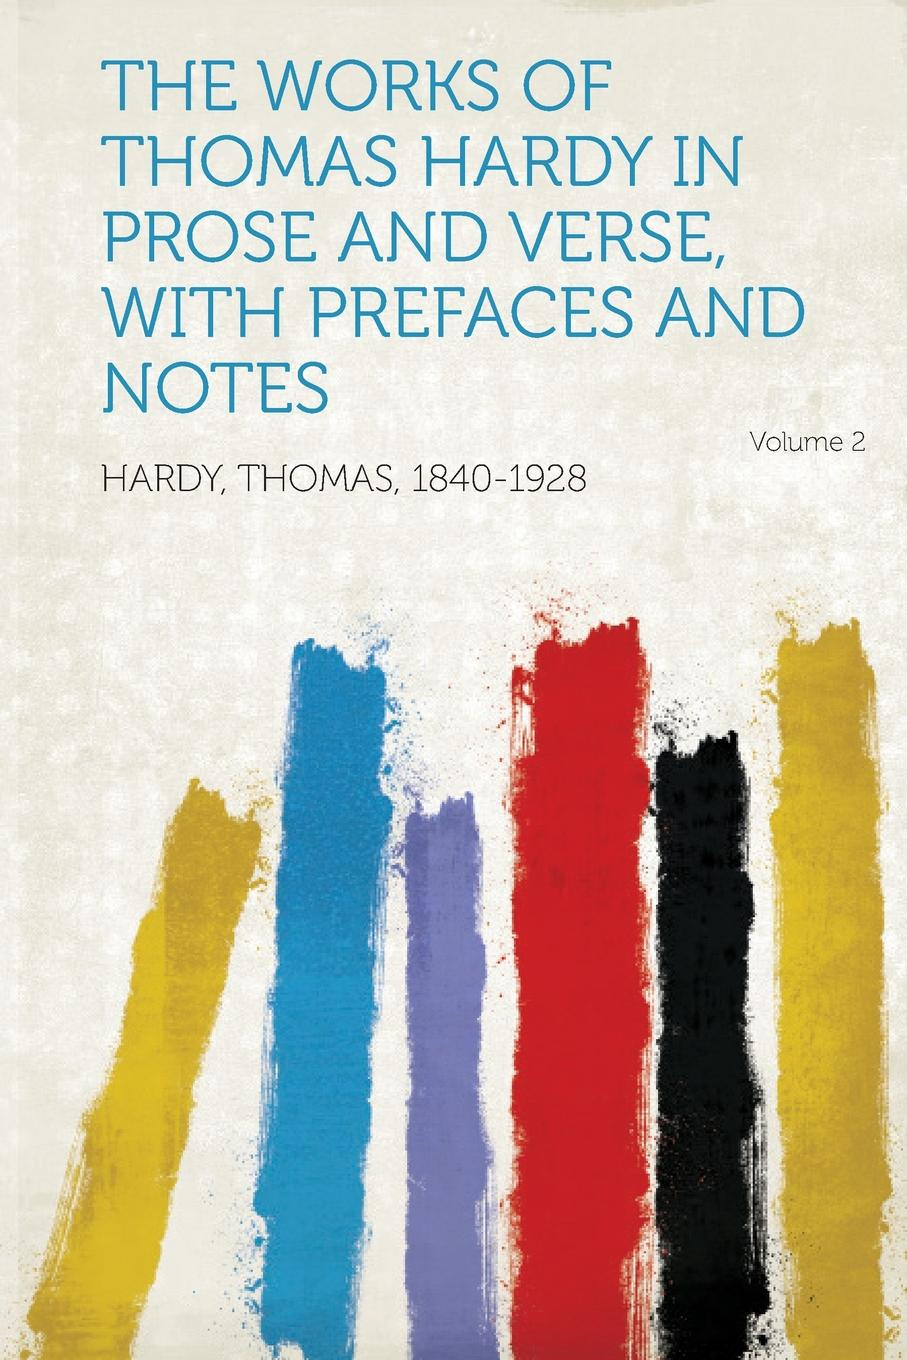 Thomas Defendant Hardy The Works of in Prose and Verse, with Prefaces Notes Volume 2